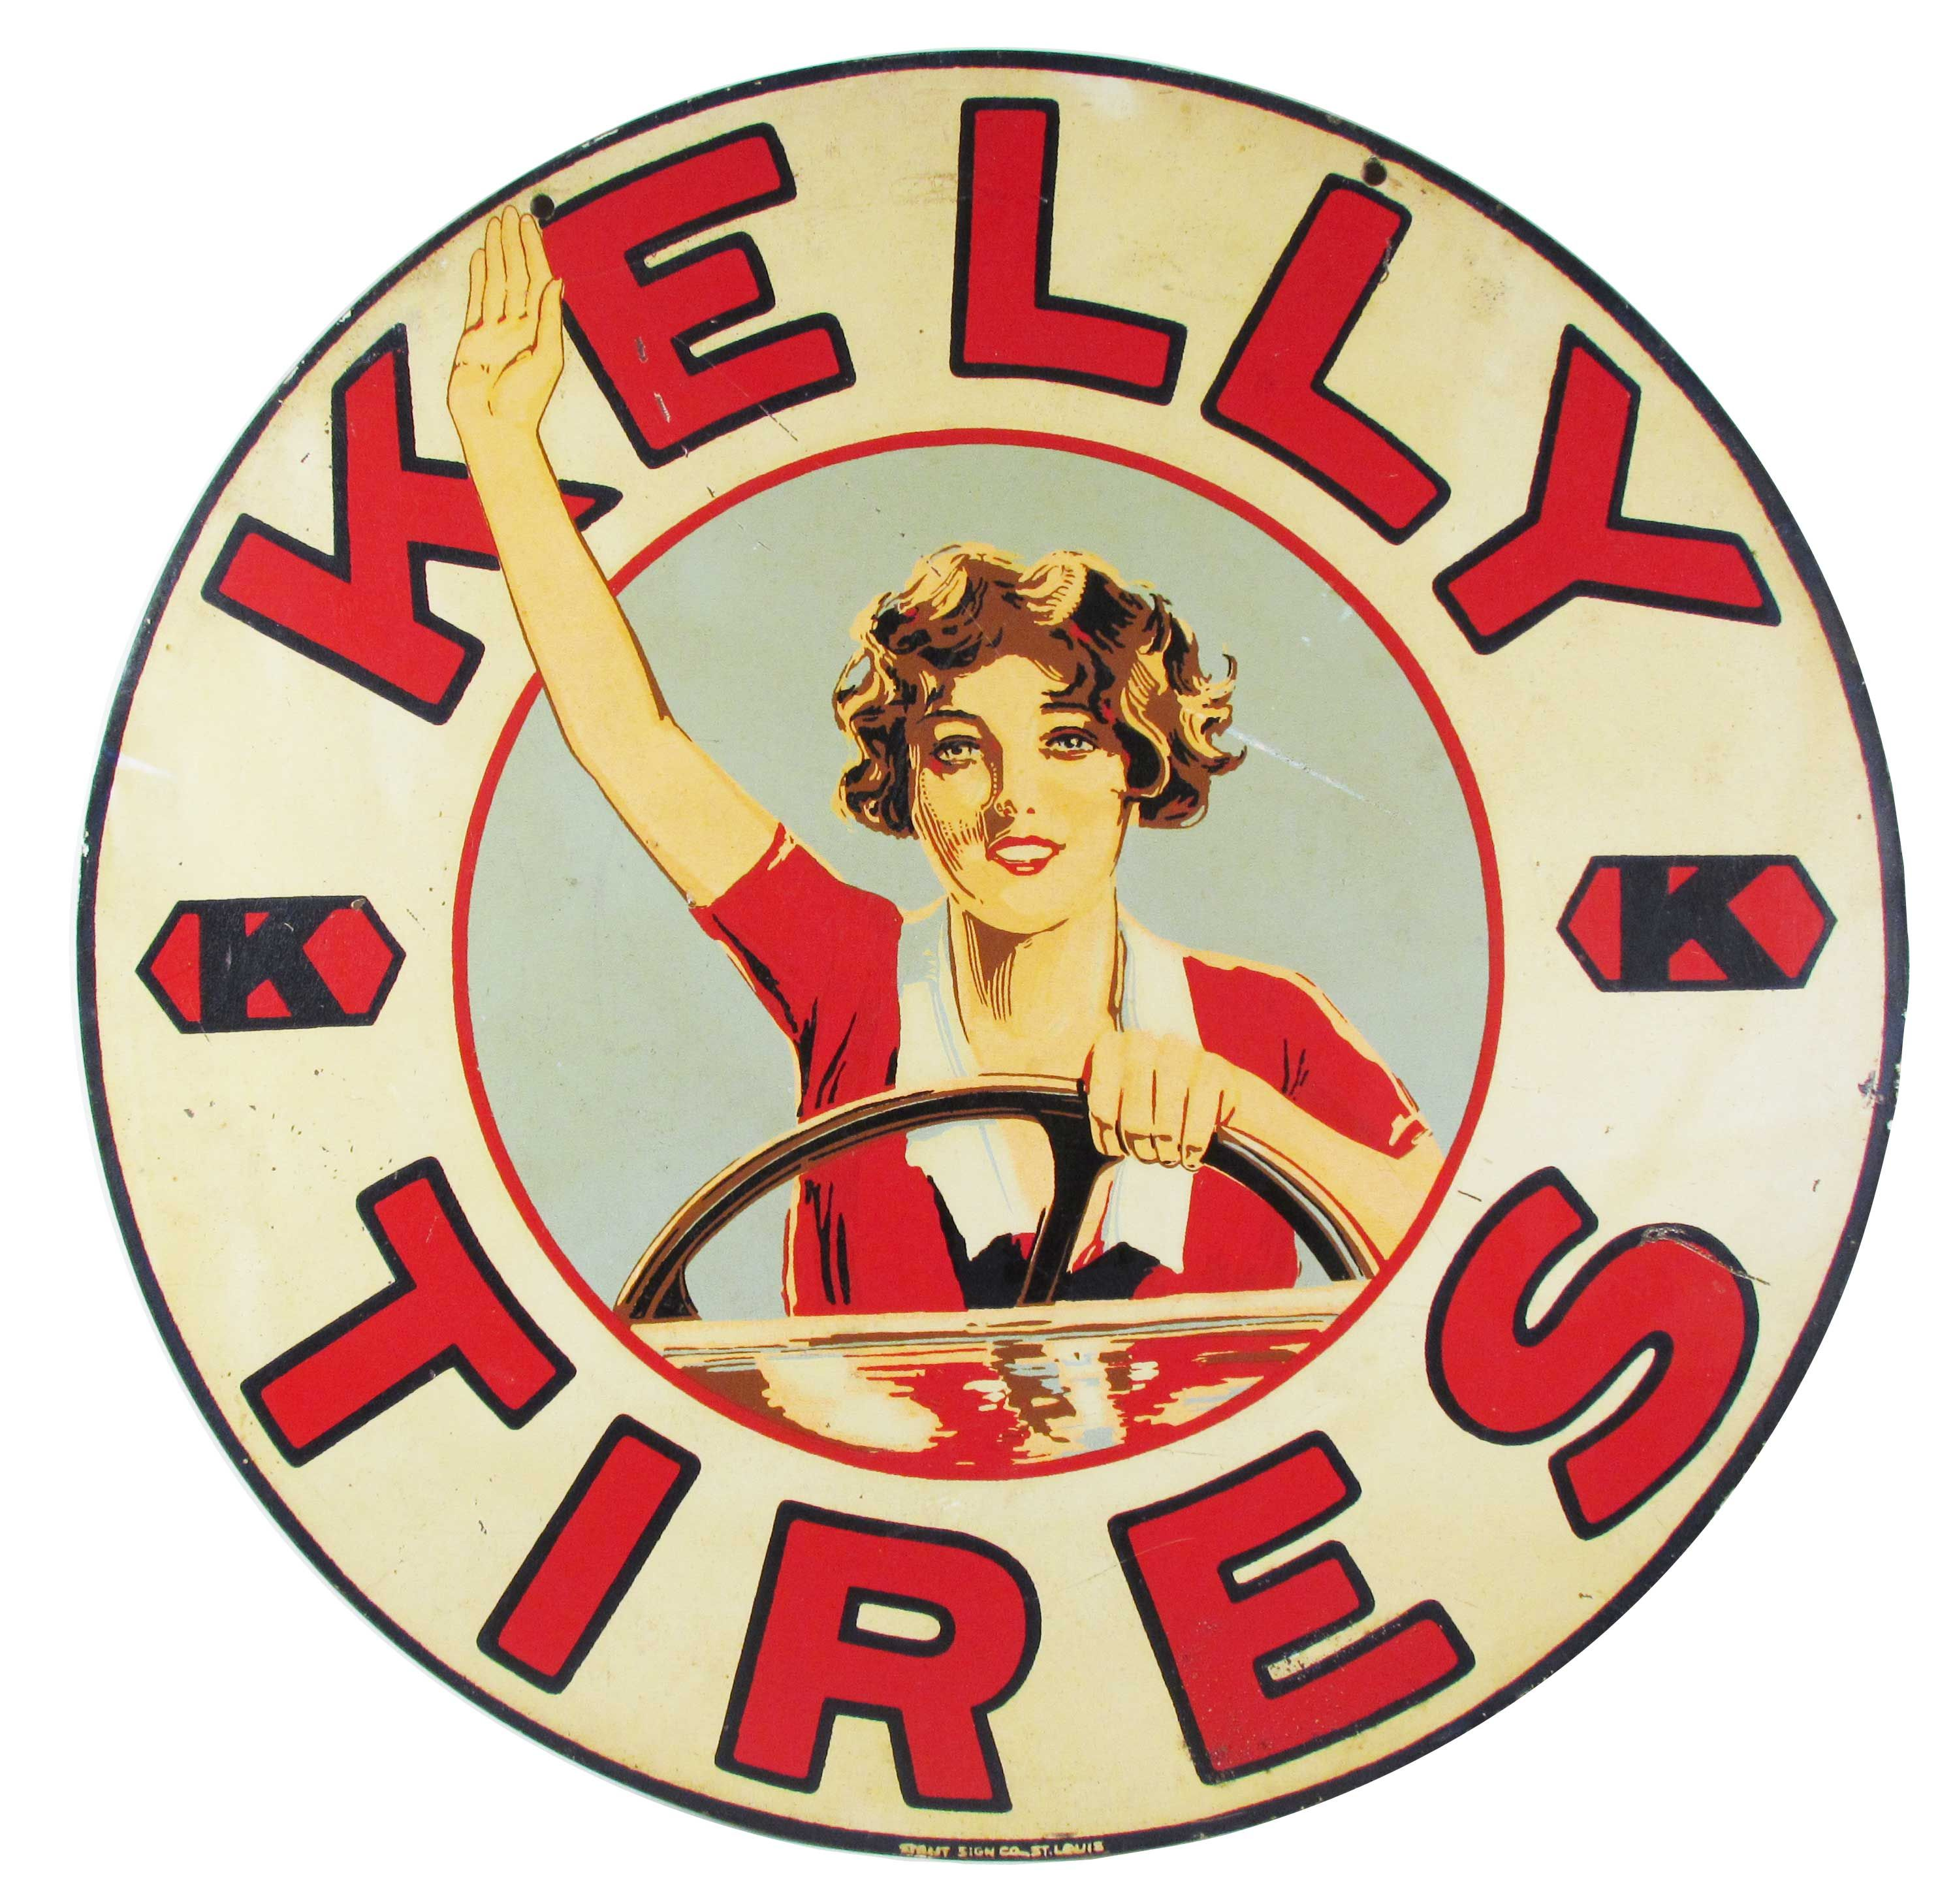 This hard to find Kelly Tires tin sign in good original condition, measuring 24 inches in diameter, is expected to bring between $15,000 and $25,000 at auction. Check out this awesome WorthPoint article!